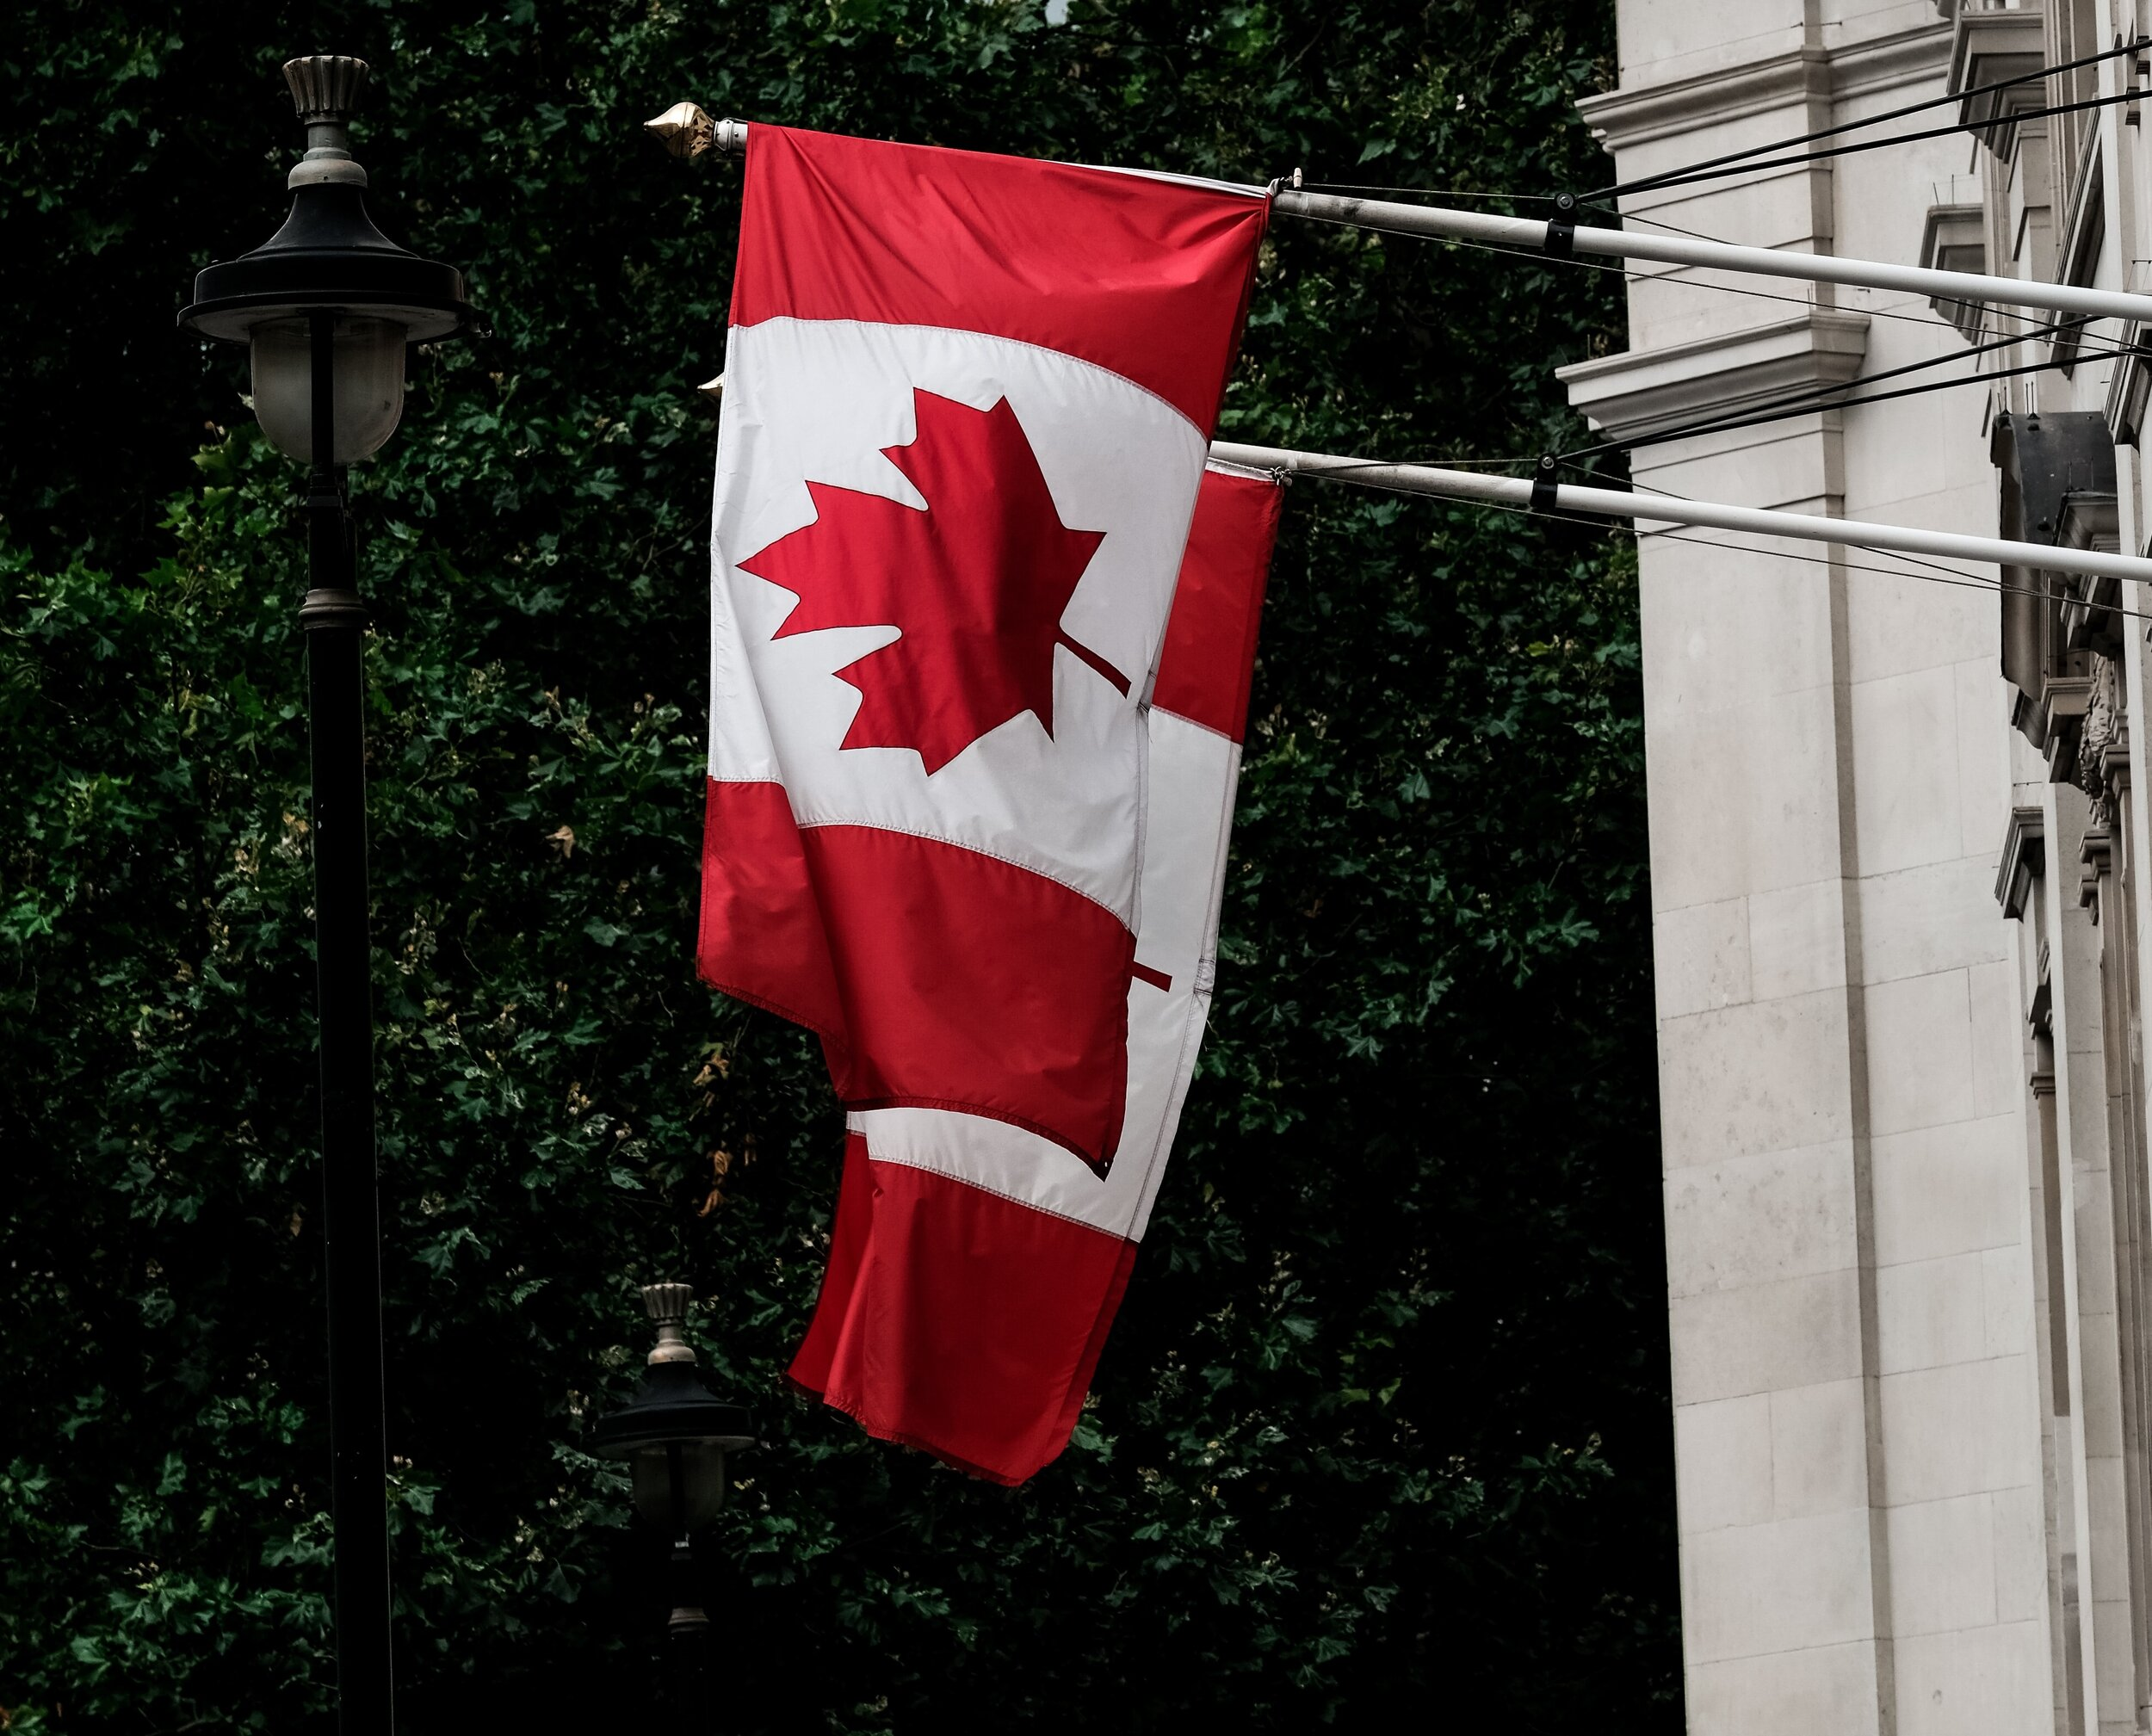 - HE Ms. Janice Charette, High Commissioner for Canada in the United Kingdom and the Canada-UK Chamber of Commerce invites you to join an informal breakfast to discuss the Canadian election results featuring experts and commentators.